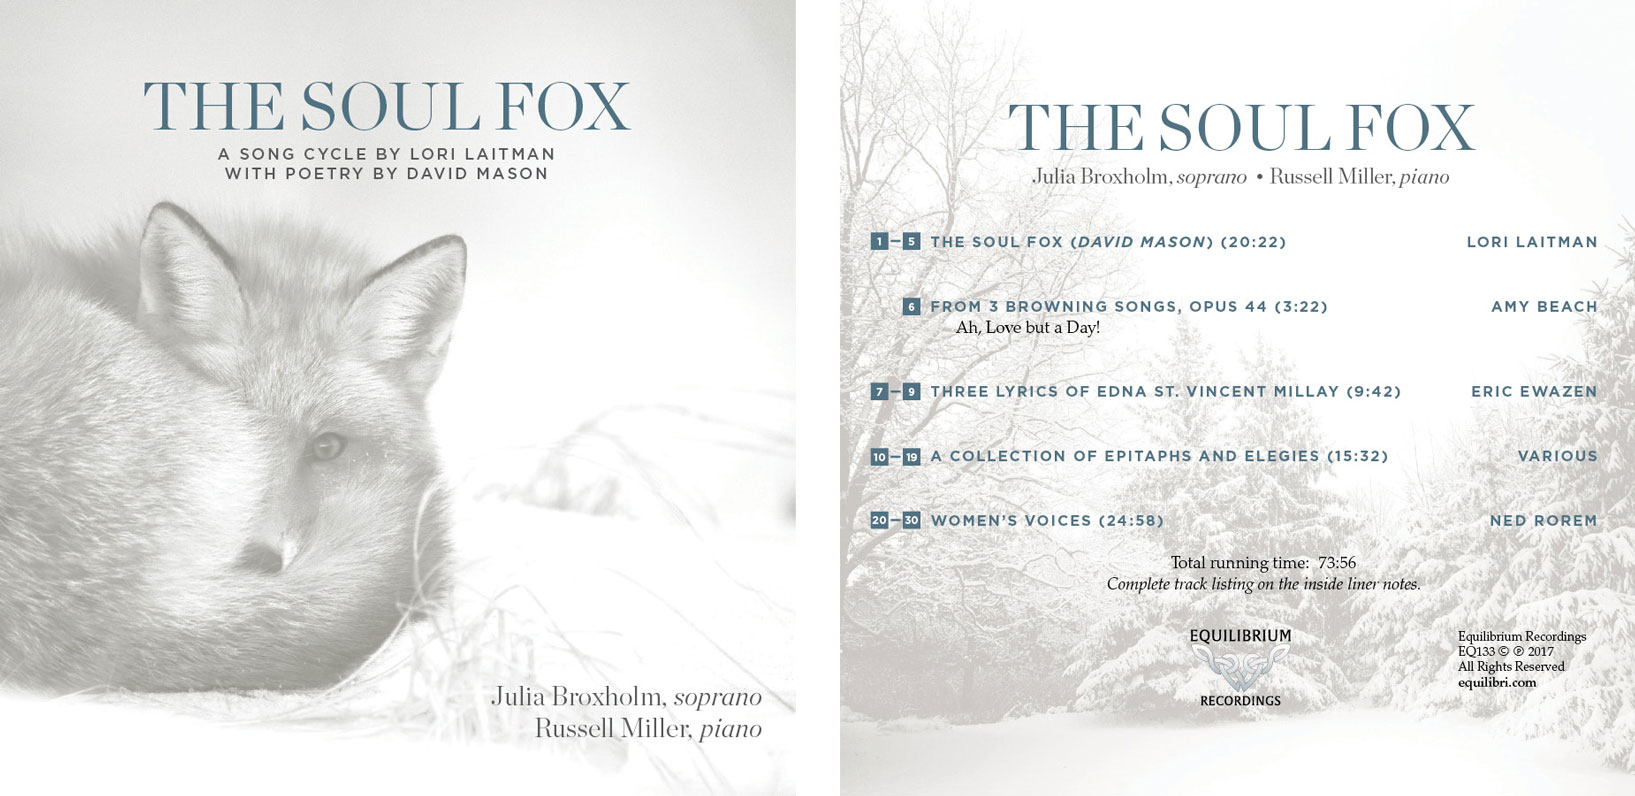 The Soul Fox album cover - Julia Broxholm